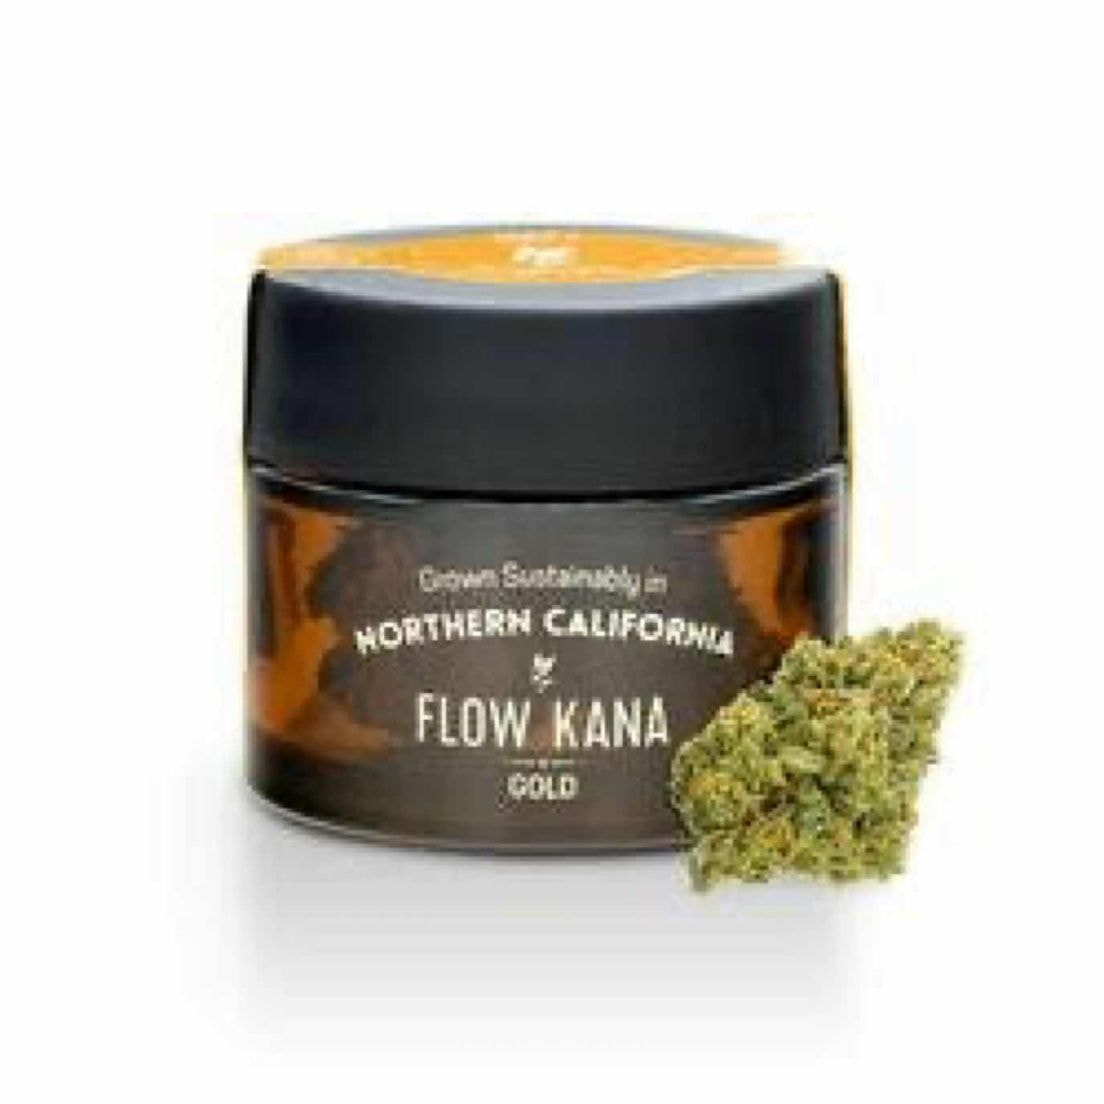 Flow Kana - Pineapple Punch 7g (taxes included)